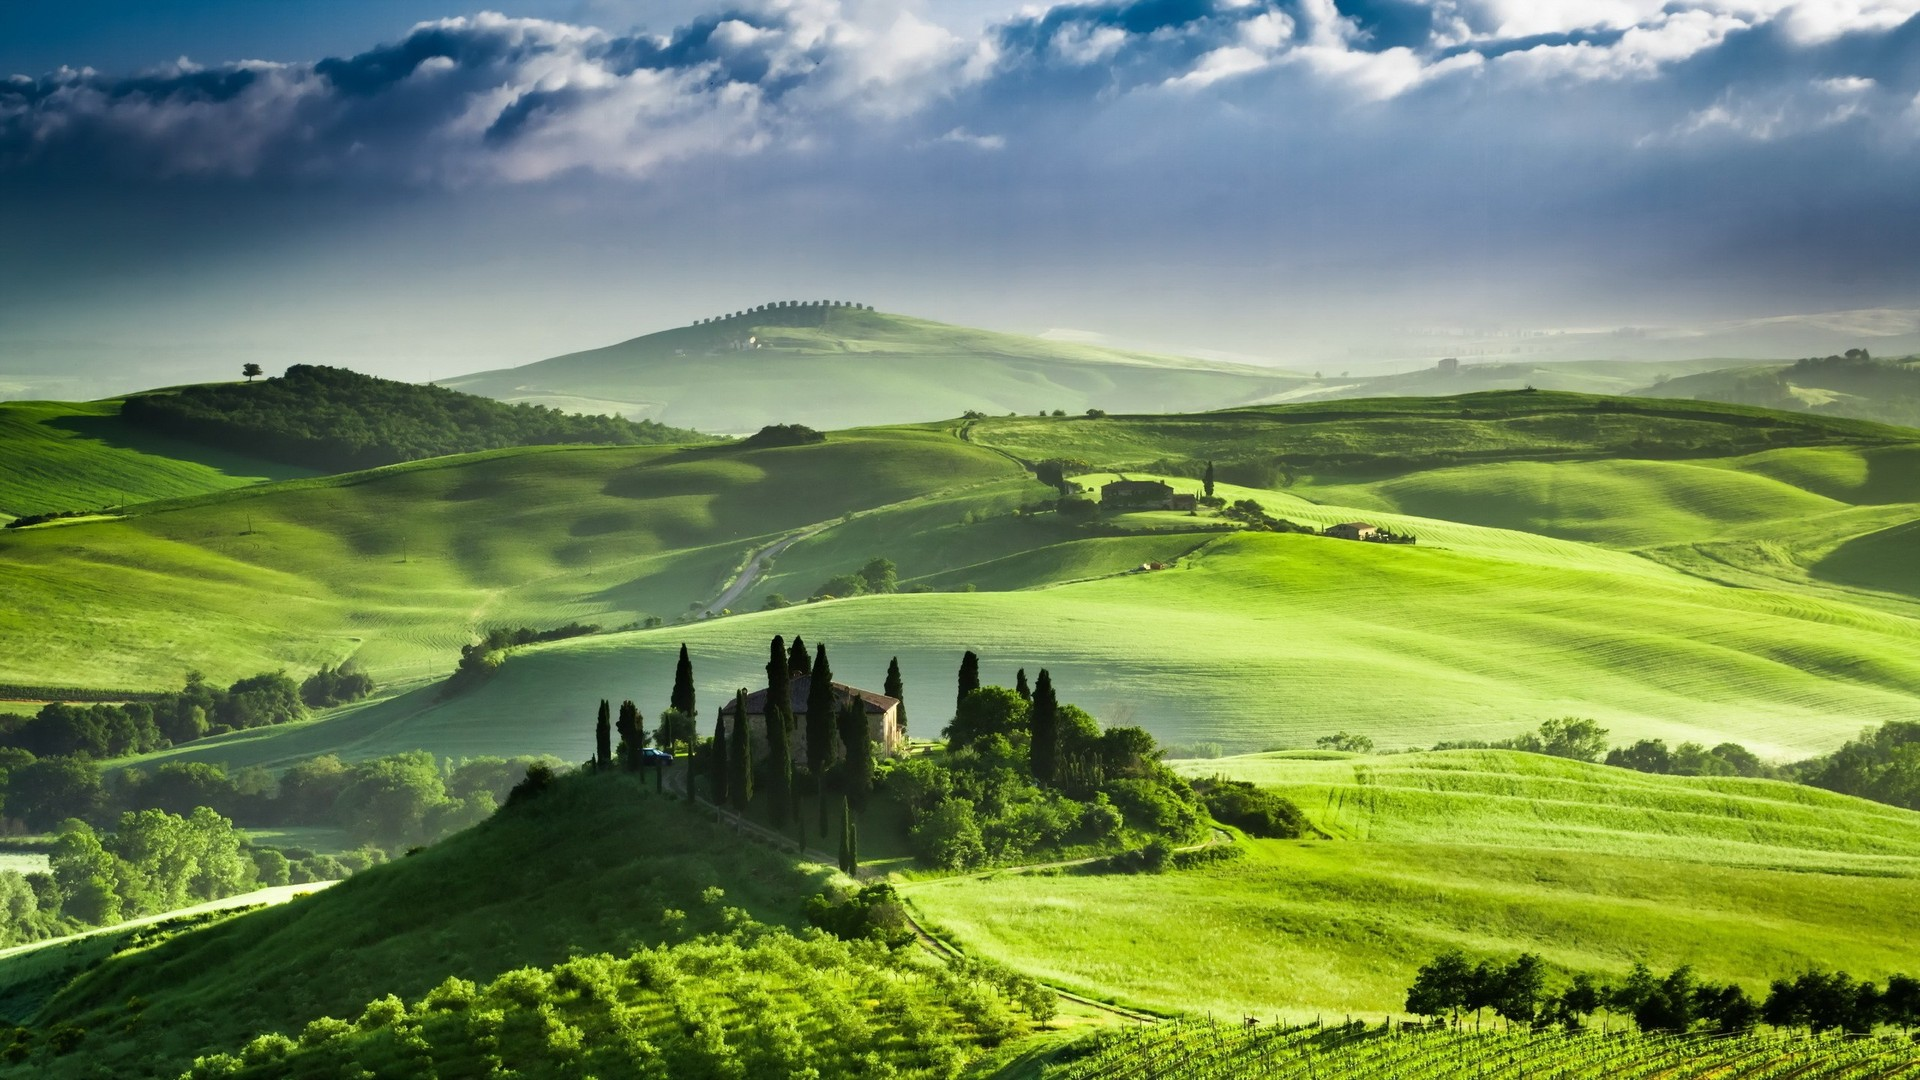 Italy wallpapers best wallpapers for Immagini 1920x1080